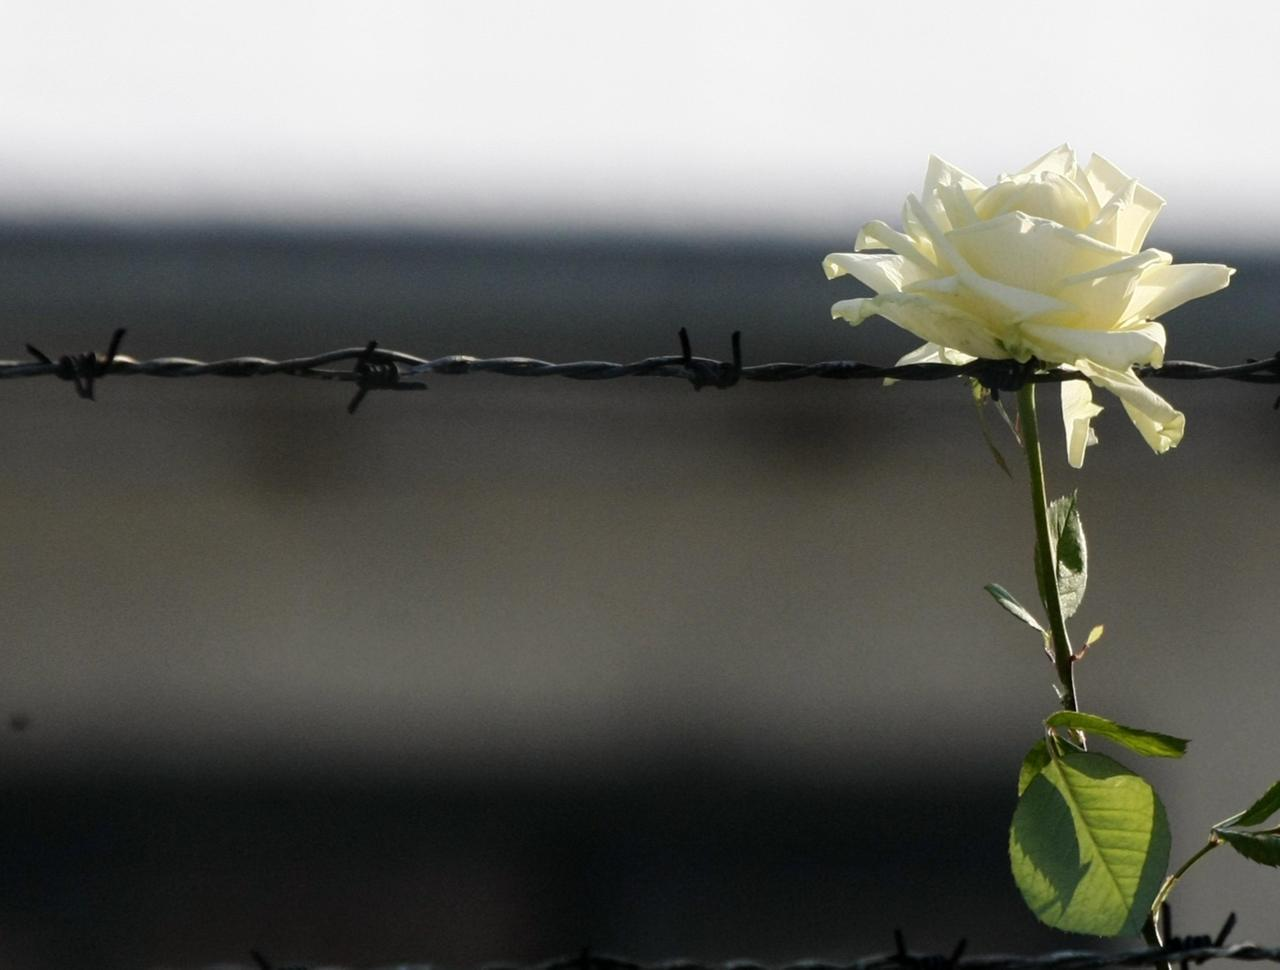 Thank goodness for Reuters:  A white rose is placed on barbed wire at the museum of the former Nazi death camp of Auschwitz Birkenau marking the 67th anniversary of the liberation of the camp by Soviet troops and to remember the victims of the Holocaust, in Auschwitz Birkenau January 27, 2012. [REUTERS/Kacper Pempel]  ~reblogged by Trent Gilliss, senior editor